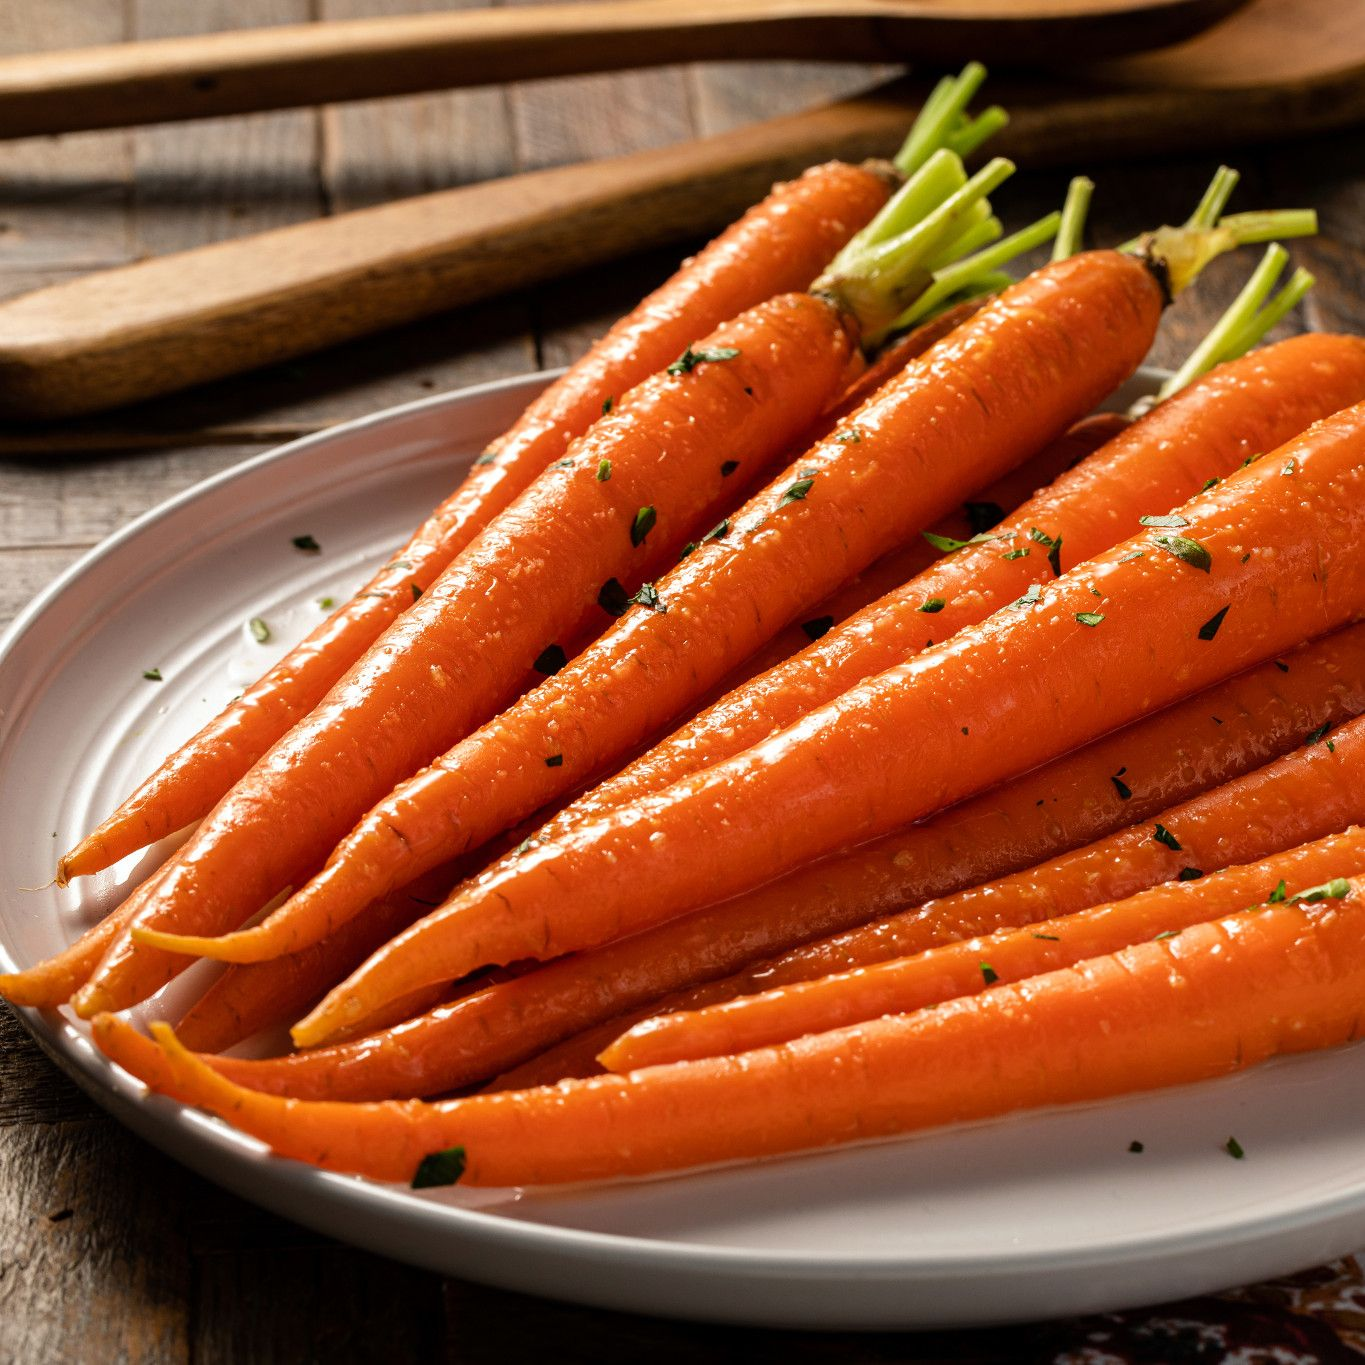 Ginger and Cilantro Carrots